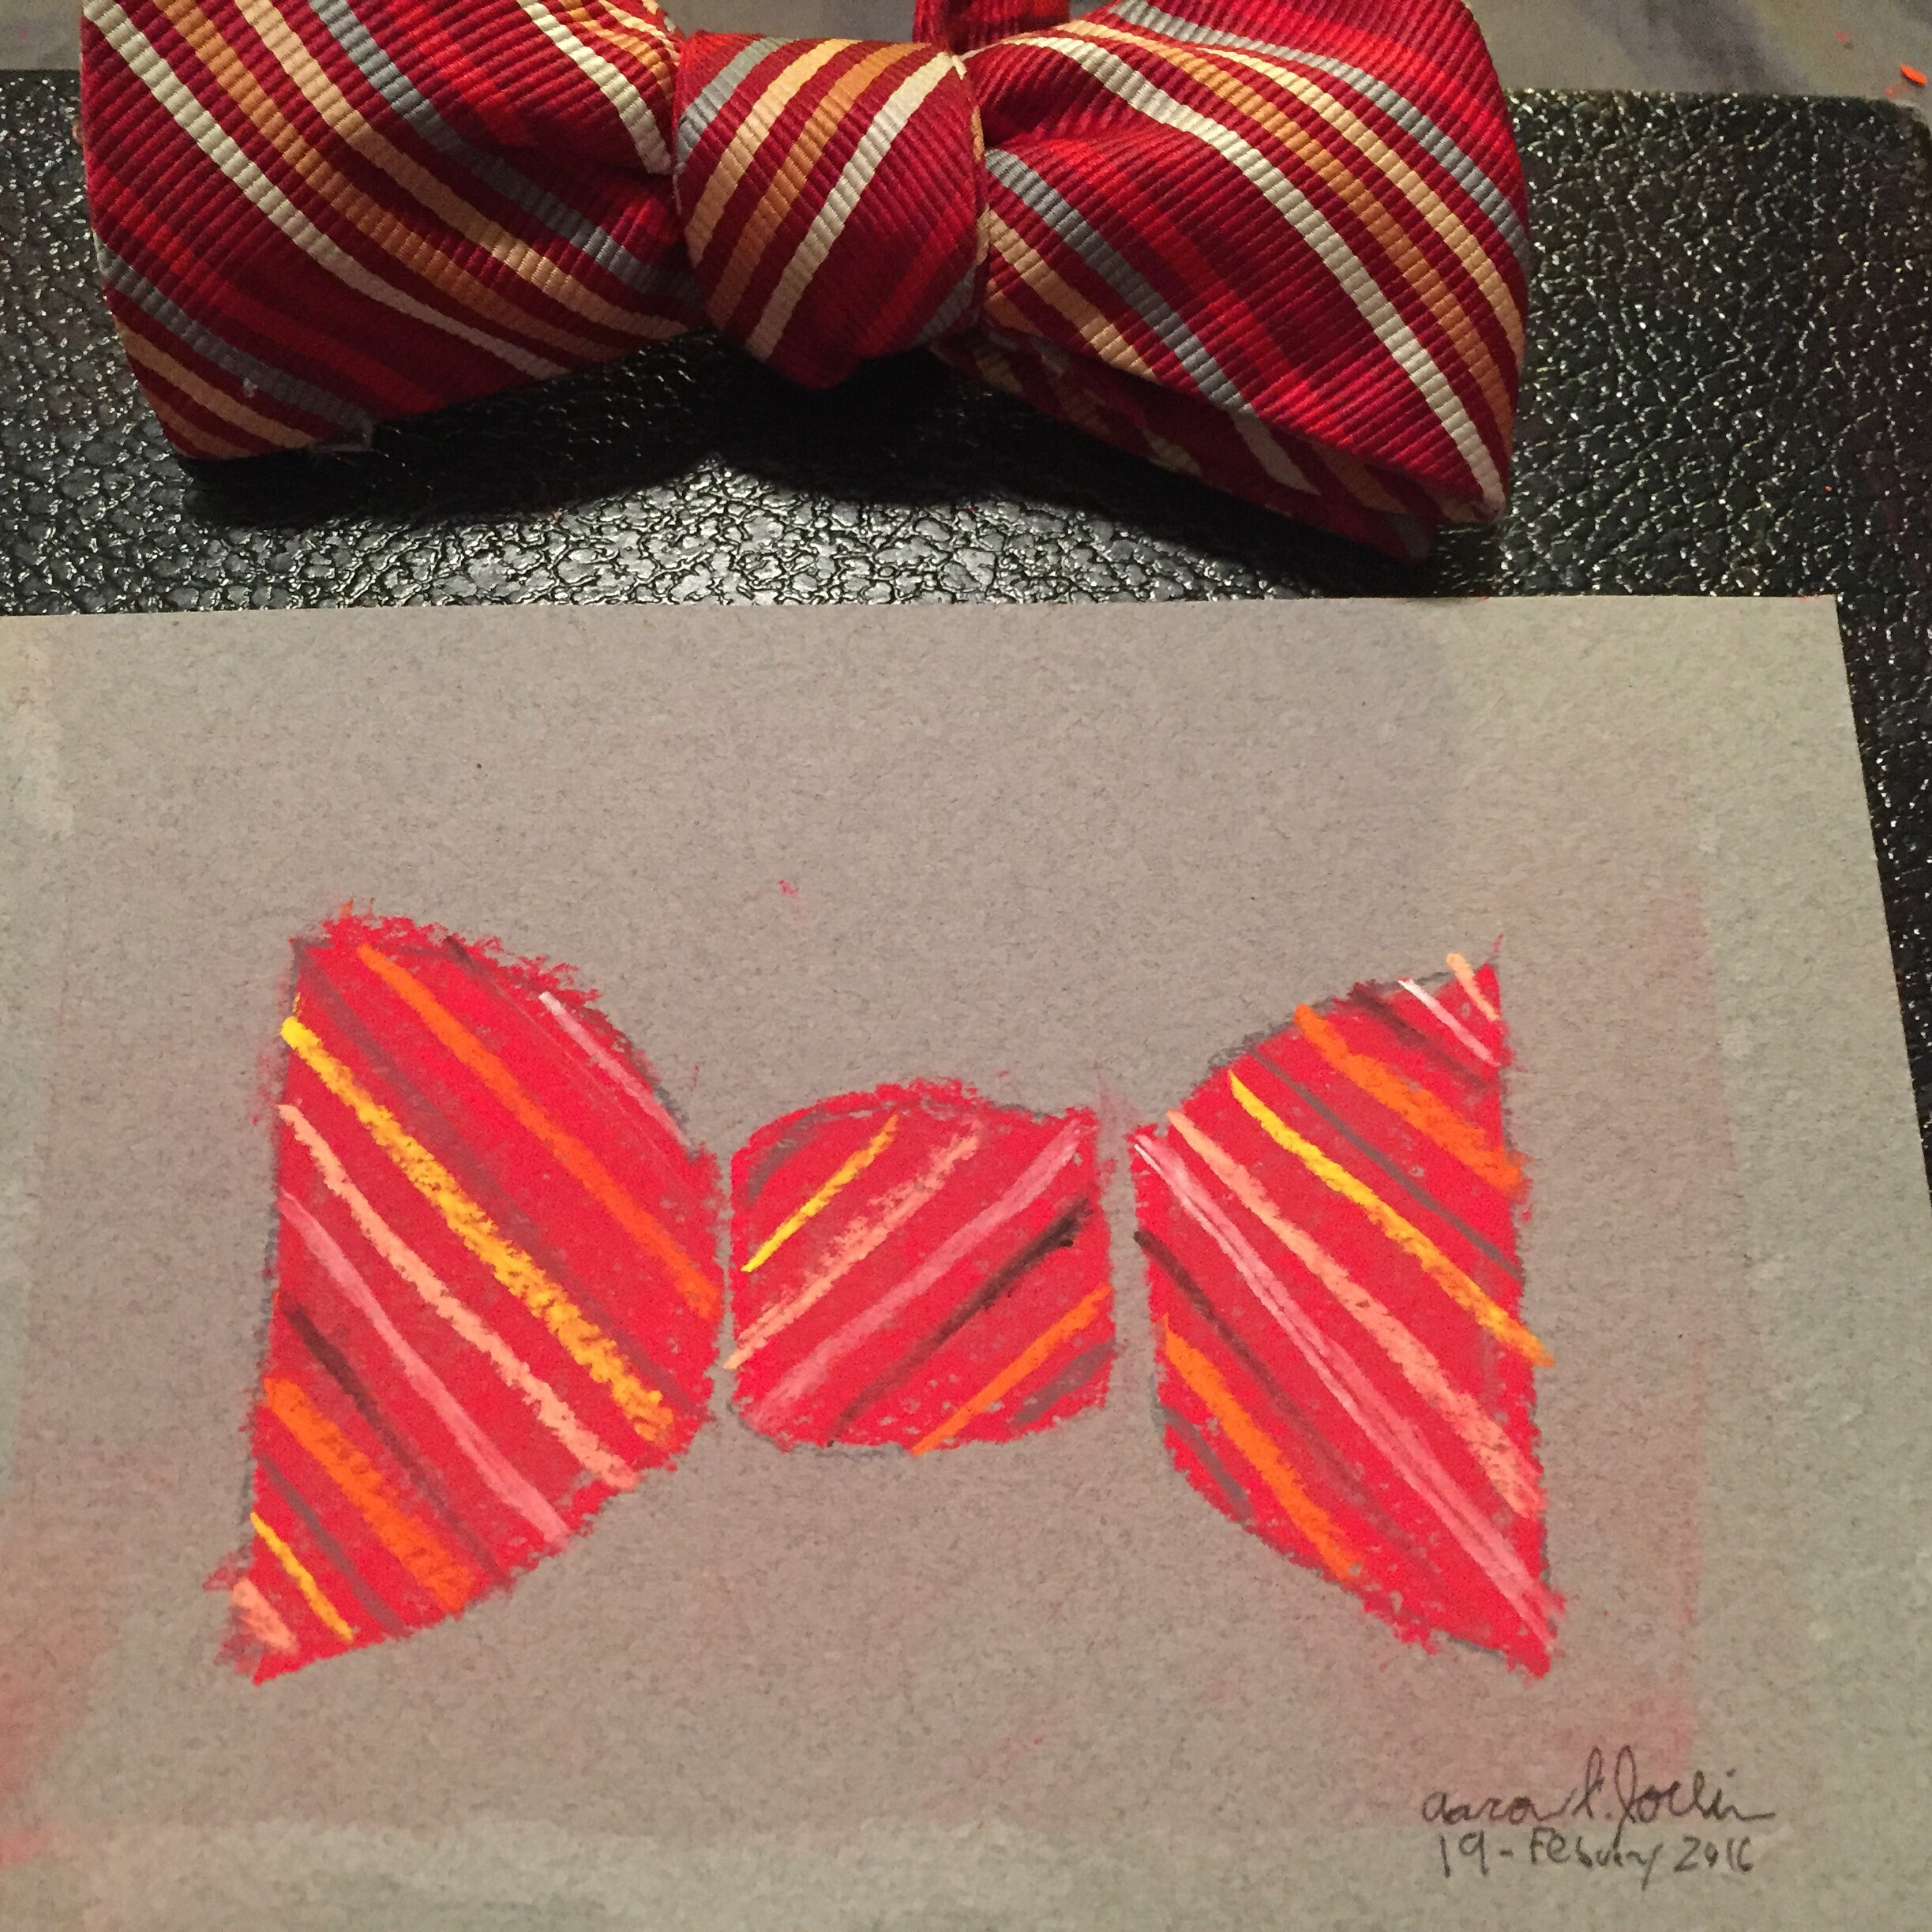 pastel drawing of a red with multi-color stripes bow tie